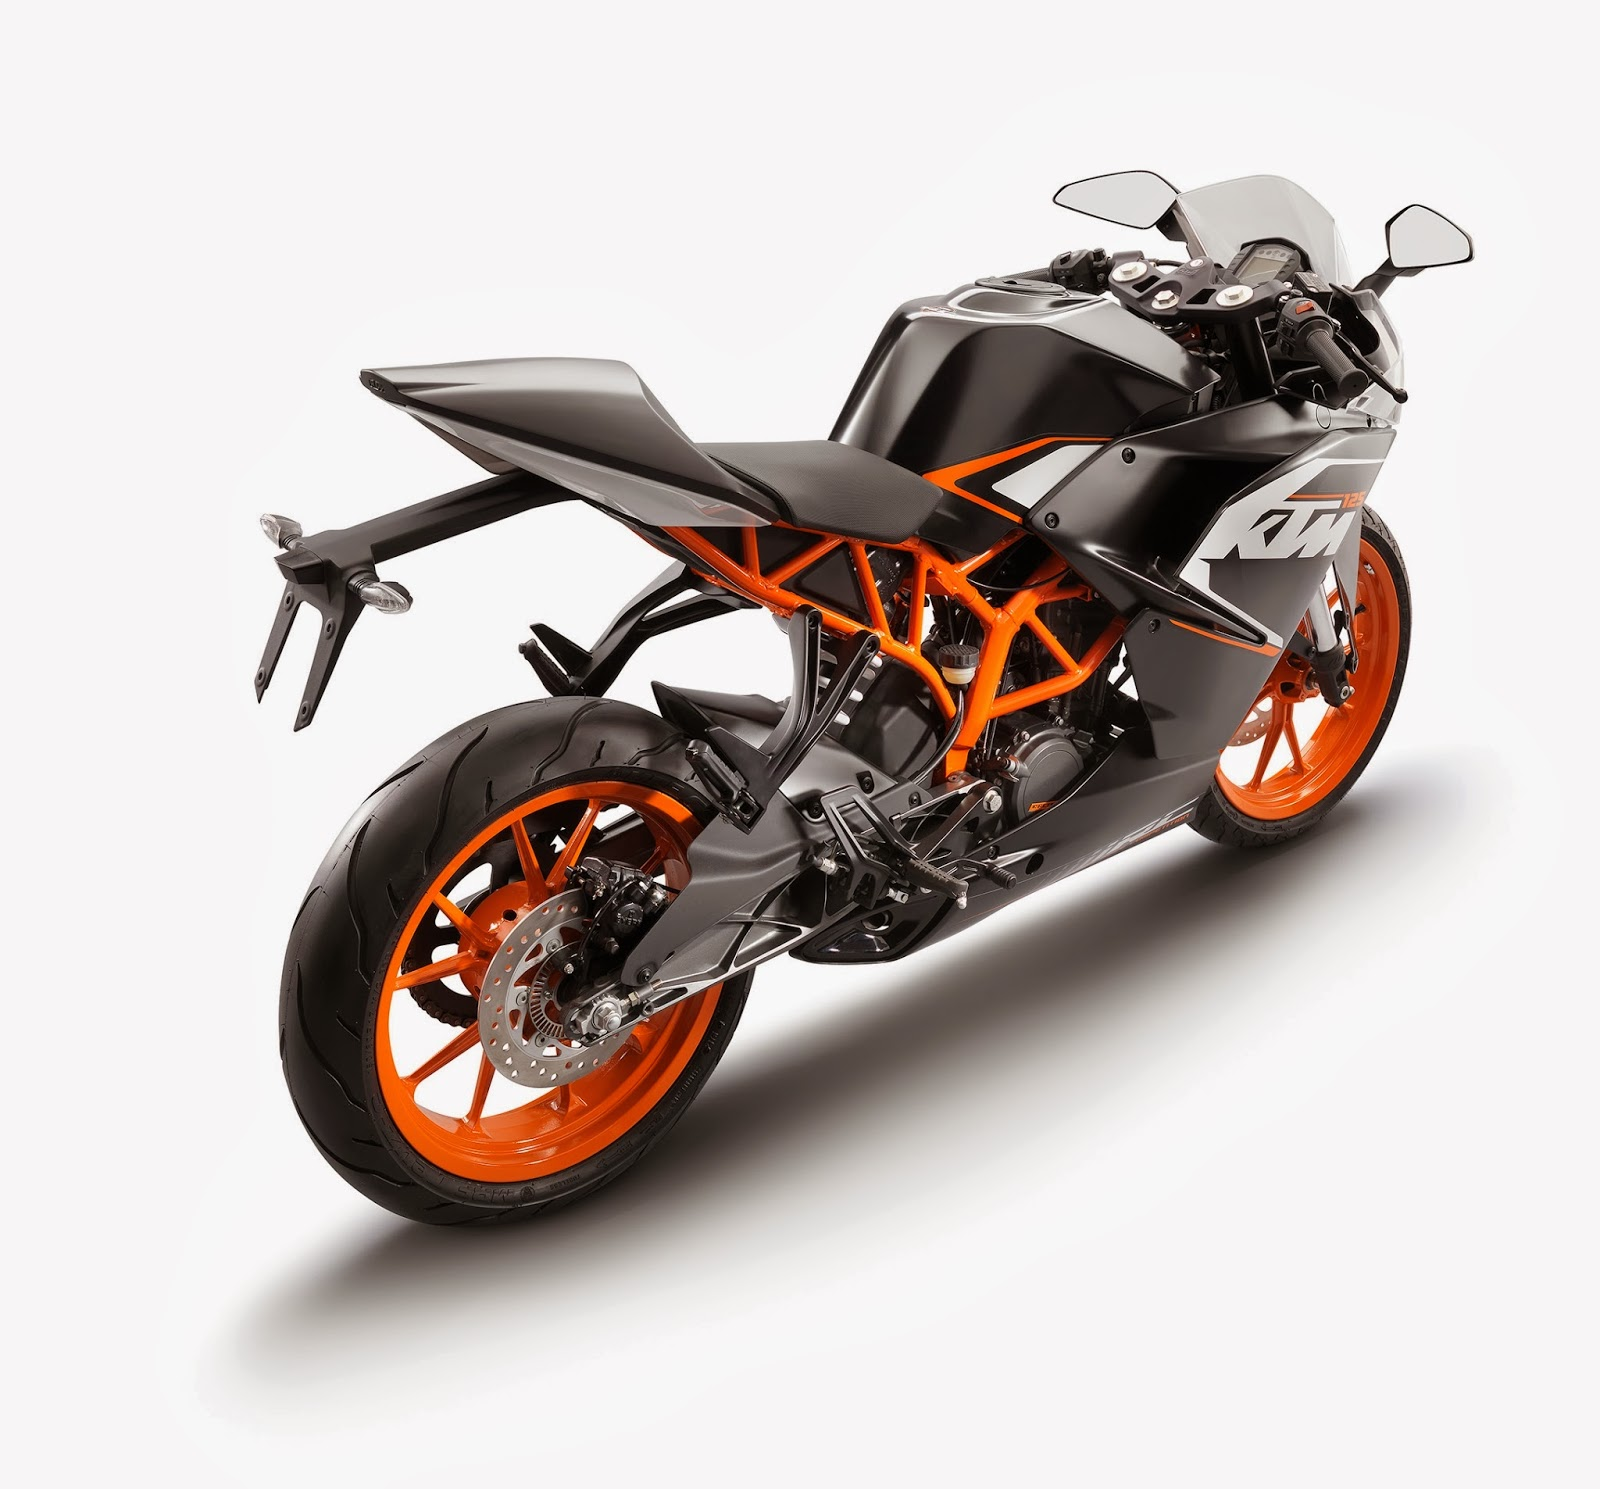 2017 Ktm Duke 125 New Spy Shots Ktm Had Revealed The New Duke 390 And Duke 125 Together Last Year Both Of Them Come Packed With The Same Set Of Features And Look Identical This Is Surprising As The New Duke 250 Doesn T Get The Split Headlamp And